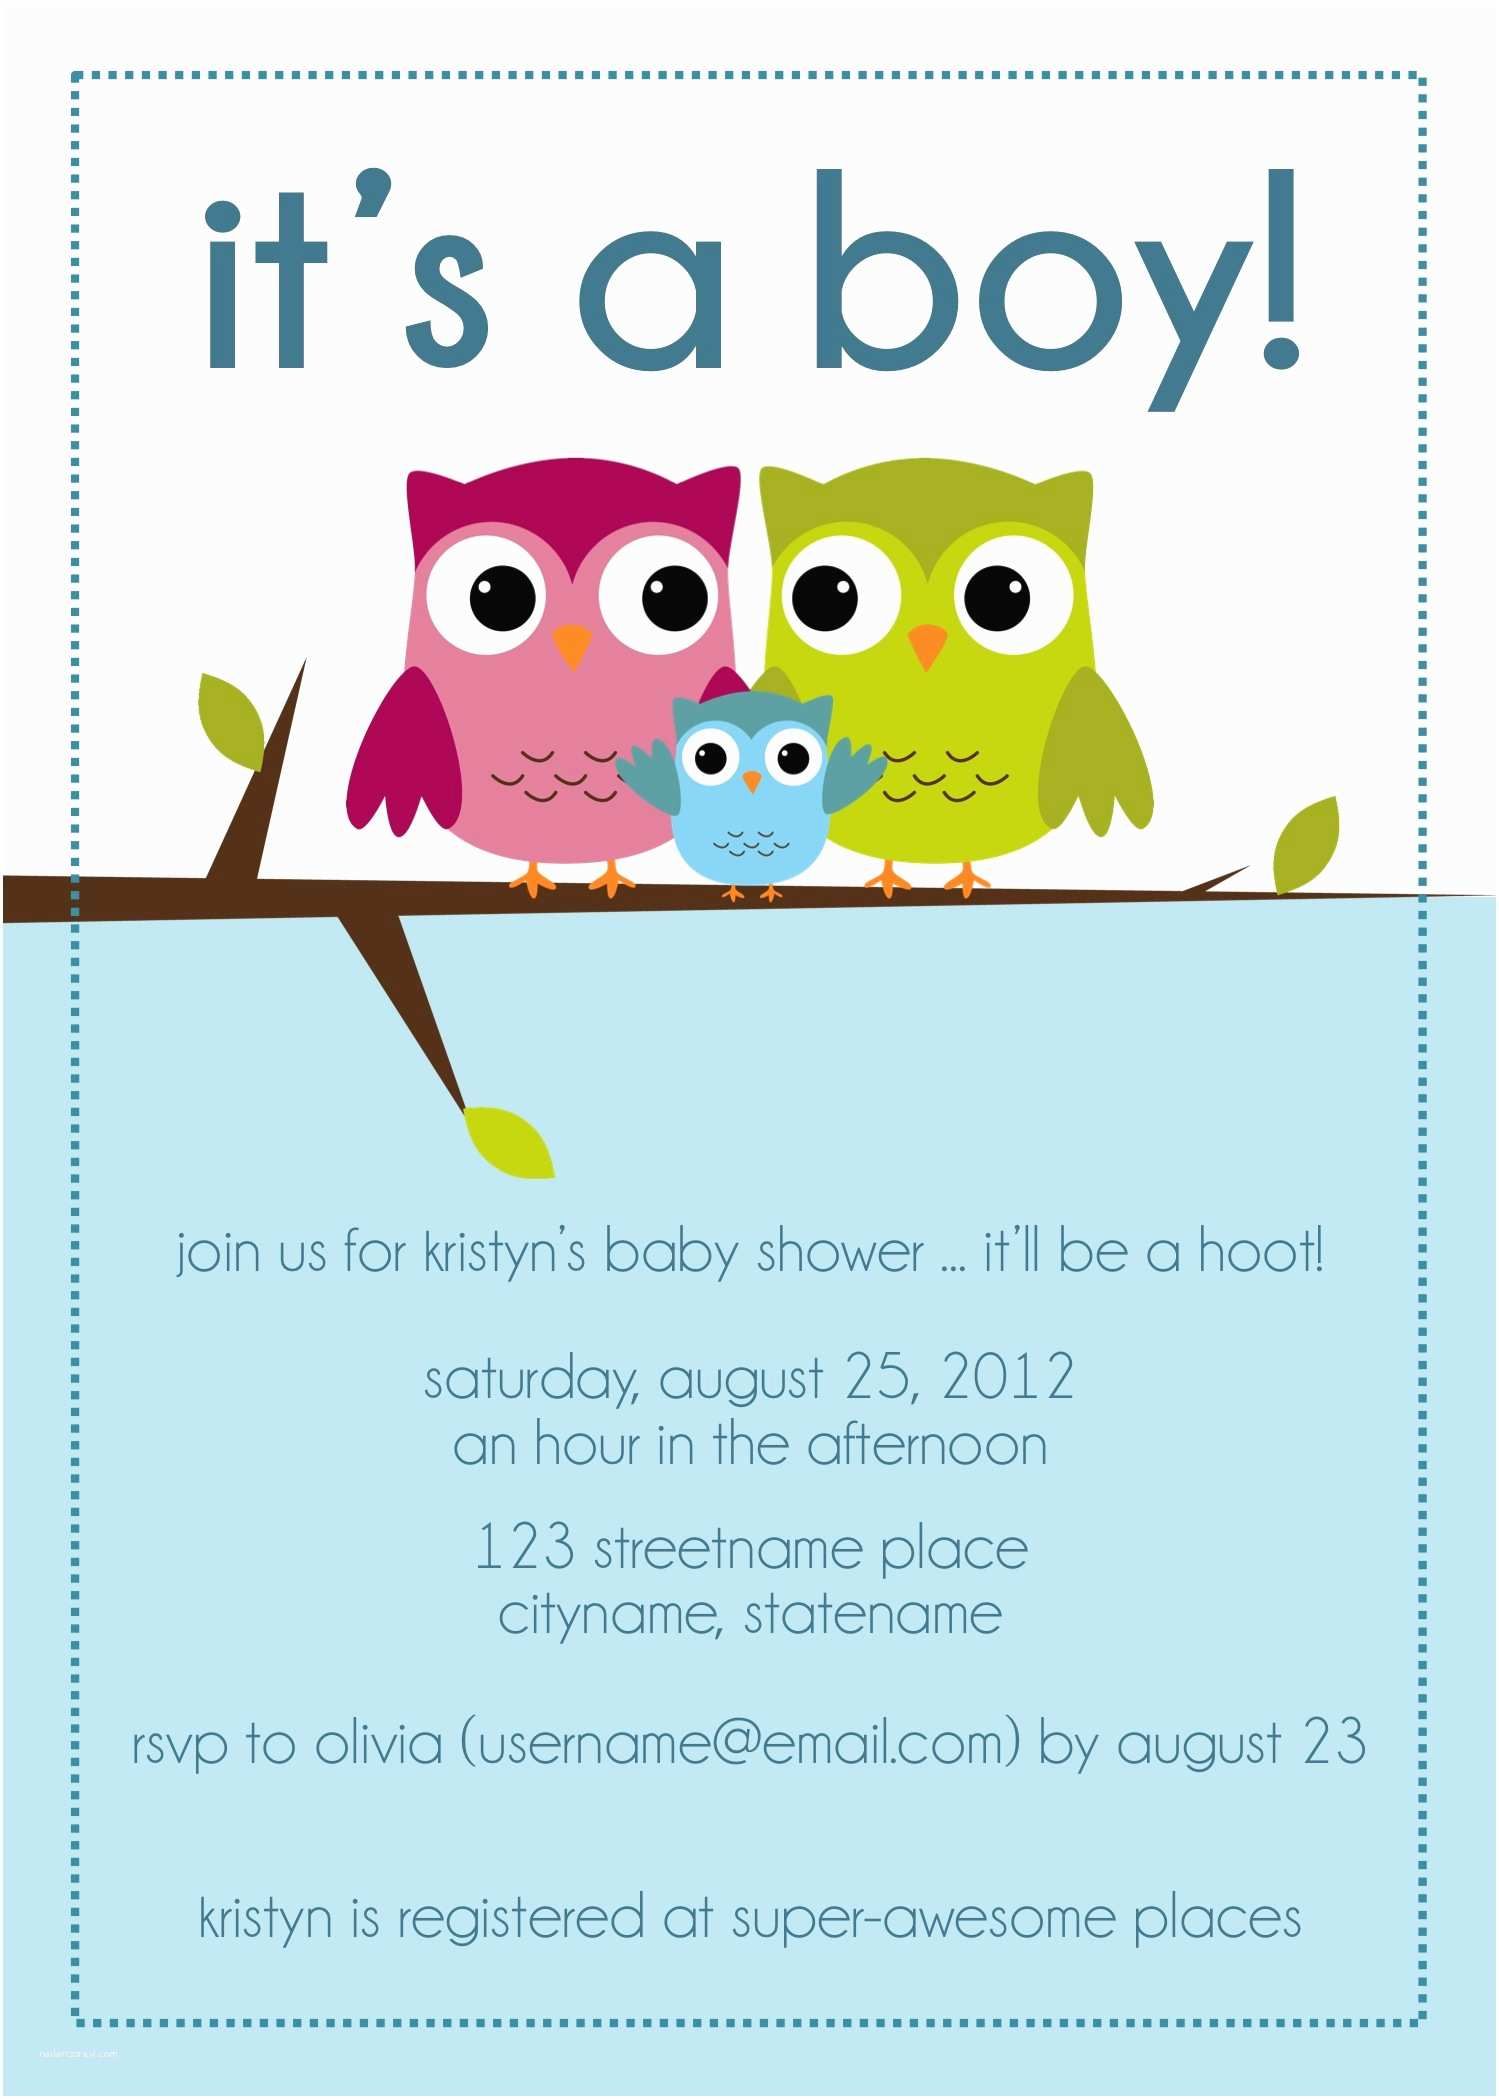 Owl Invitations for Baby Shower Owl Baby Shower Invitations Image